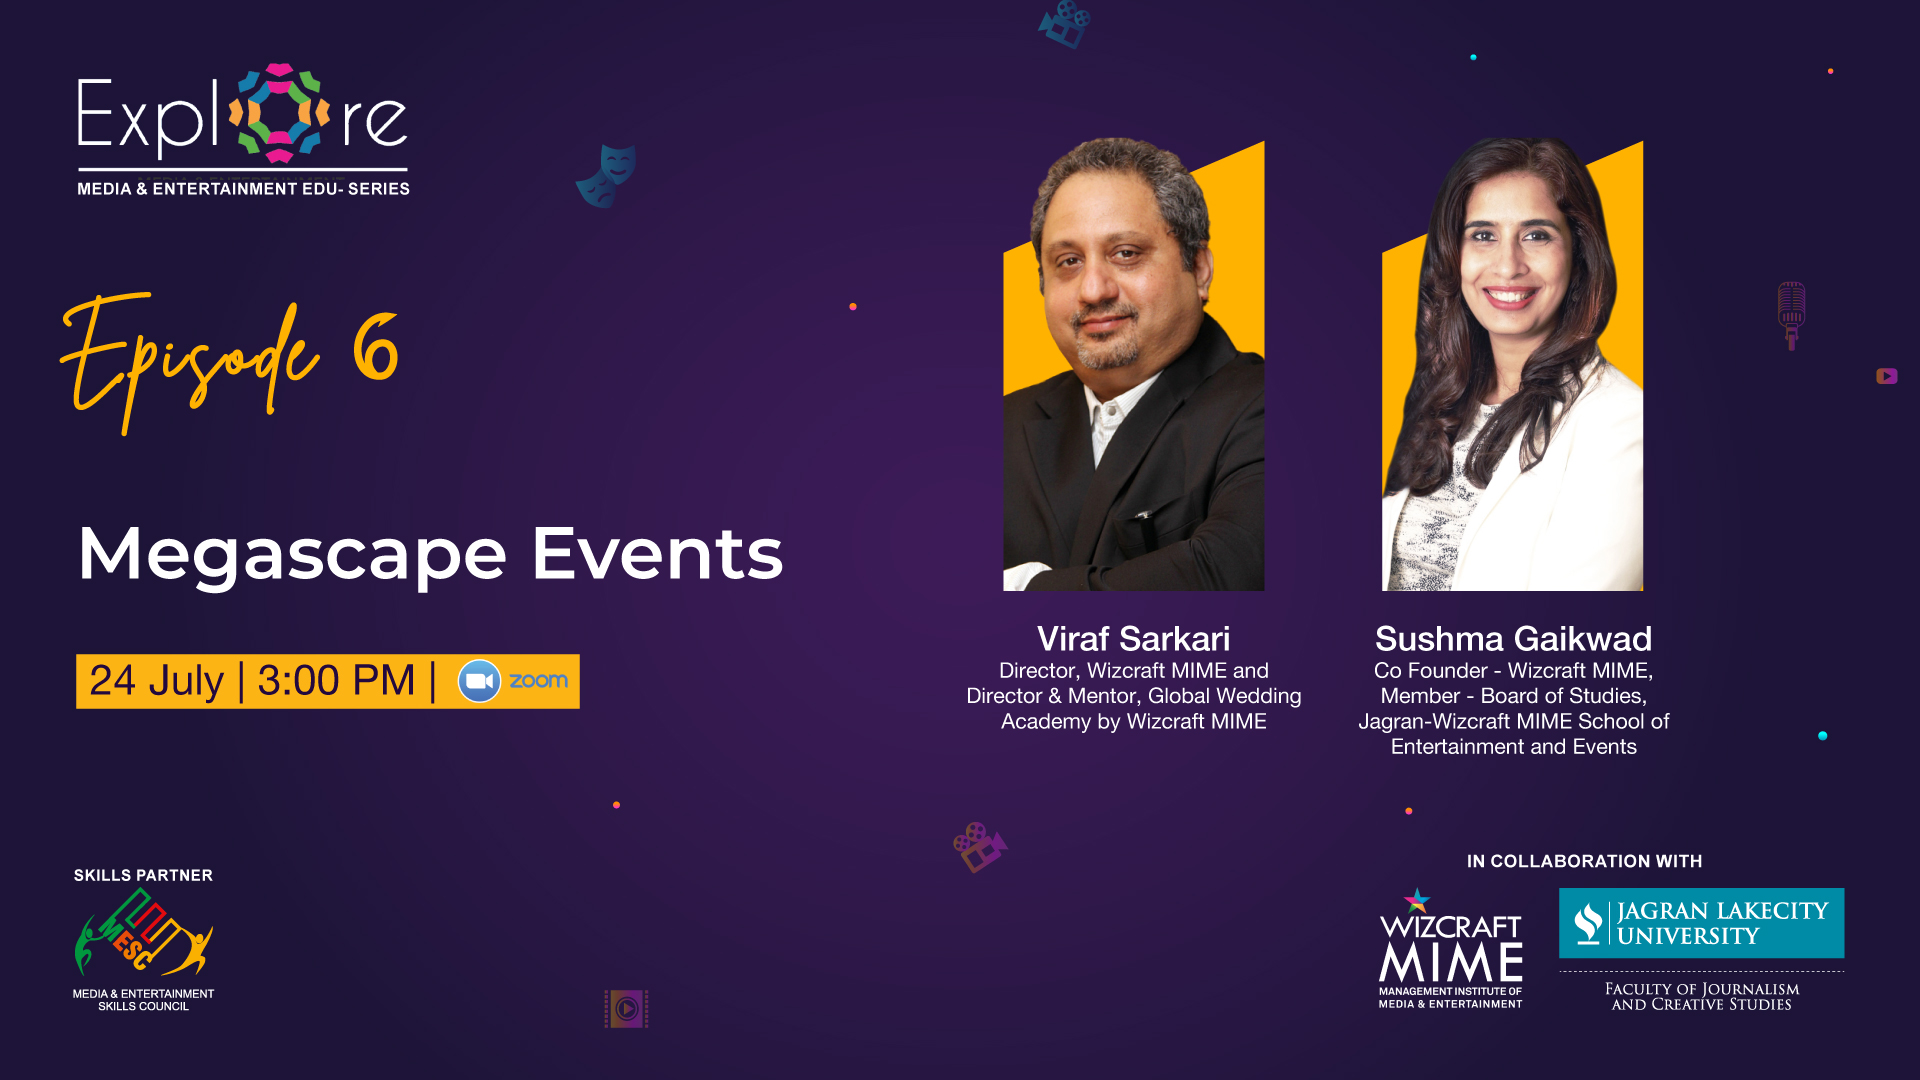 For the sixth episode of this series, we have Viraf Sarkari, Sushma Gaikwad and Diwakar Shukla, who will be sharing the success story of building WIZCRAFT as a mega events brand and what goes behind the success of MEGASCAPE events like the world cup, IIFA and many more.